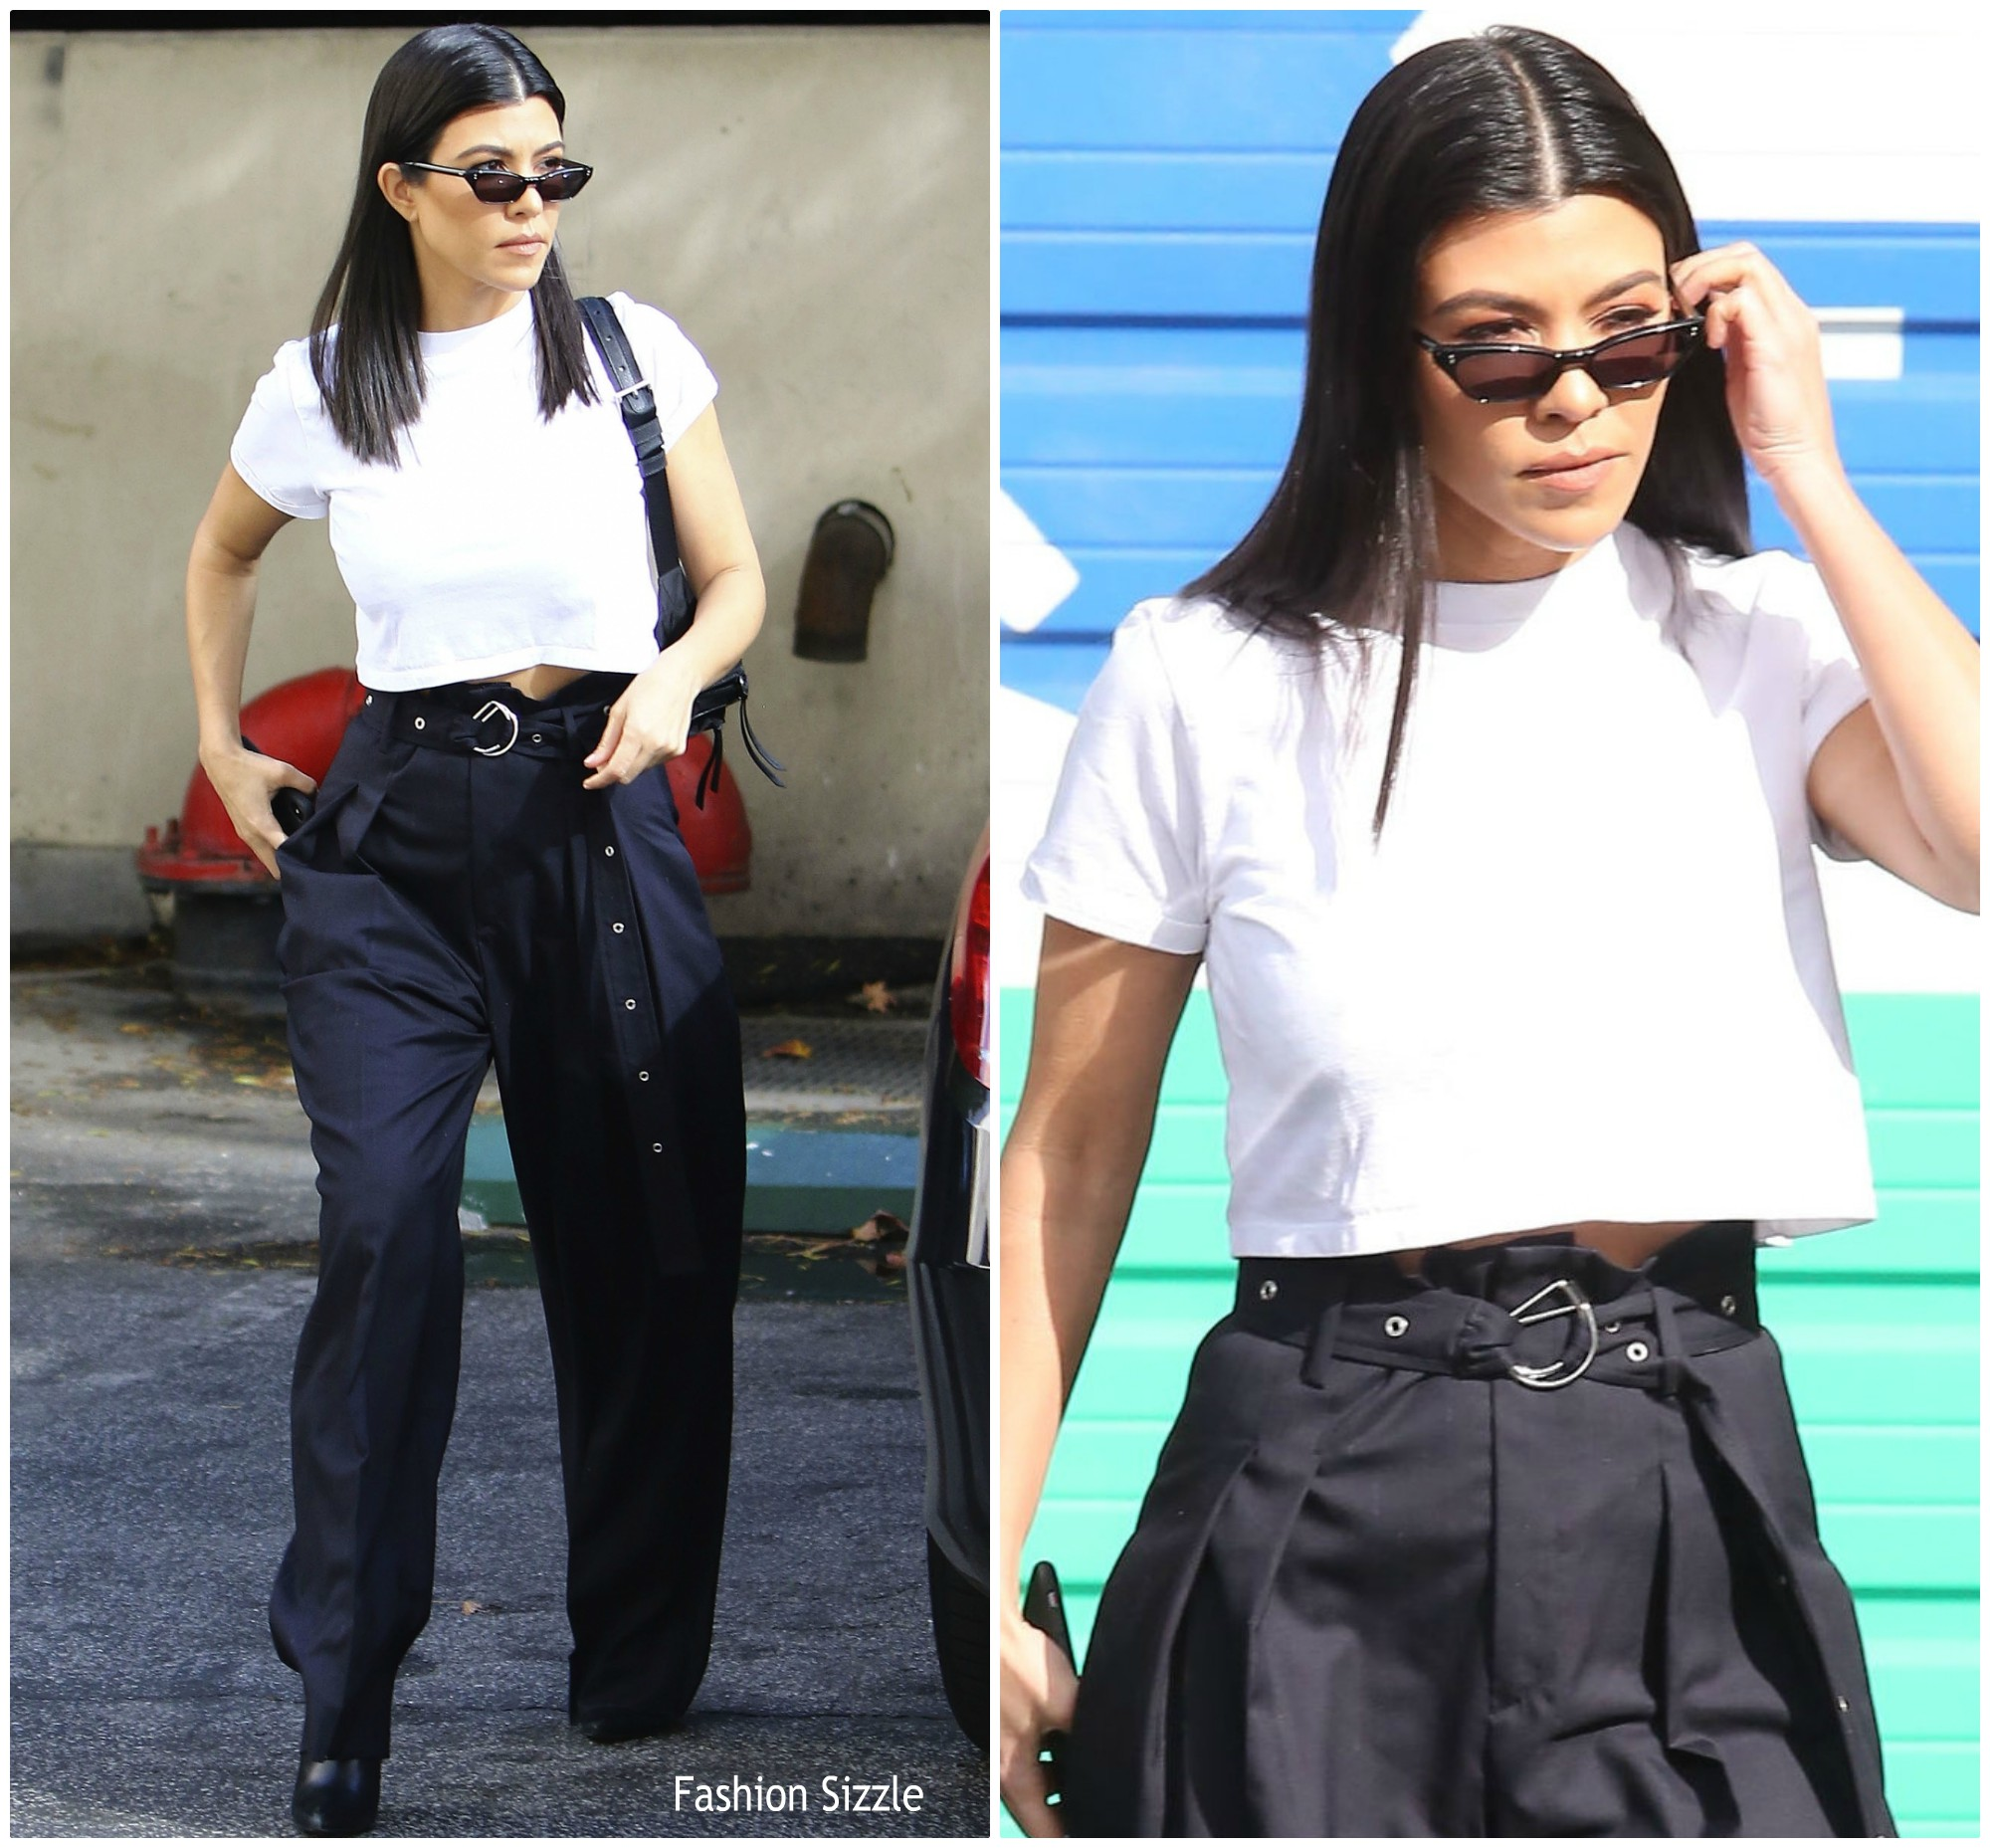 kourtney-kardashian-in-iro-trousers-leaving-a-studio-in-los-angeles